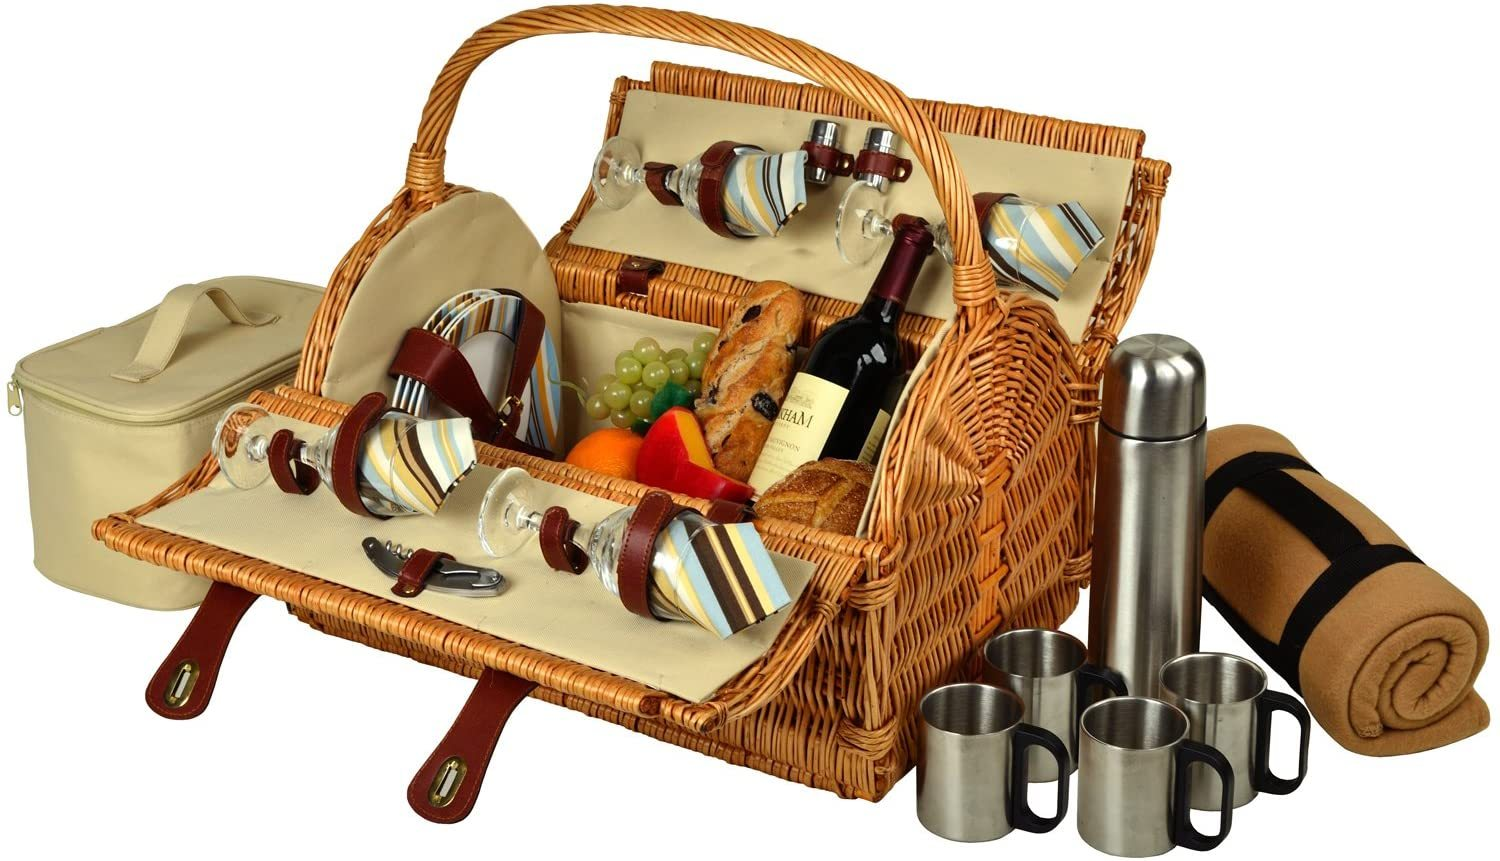 D York Picnic Basket For 4 With Blanket And Coffee Set For Outdoor Green Stripes Walmart Com Walmart Com